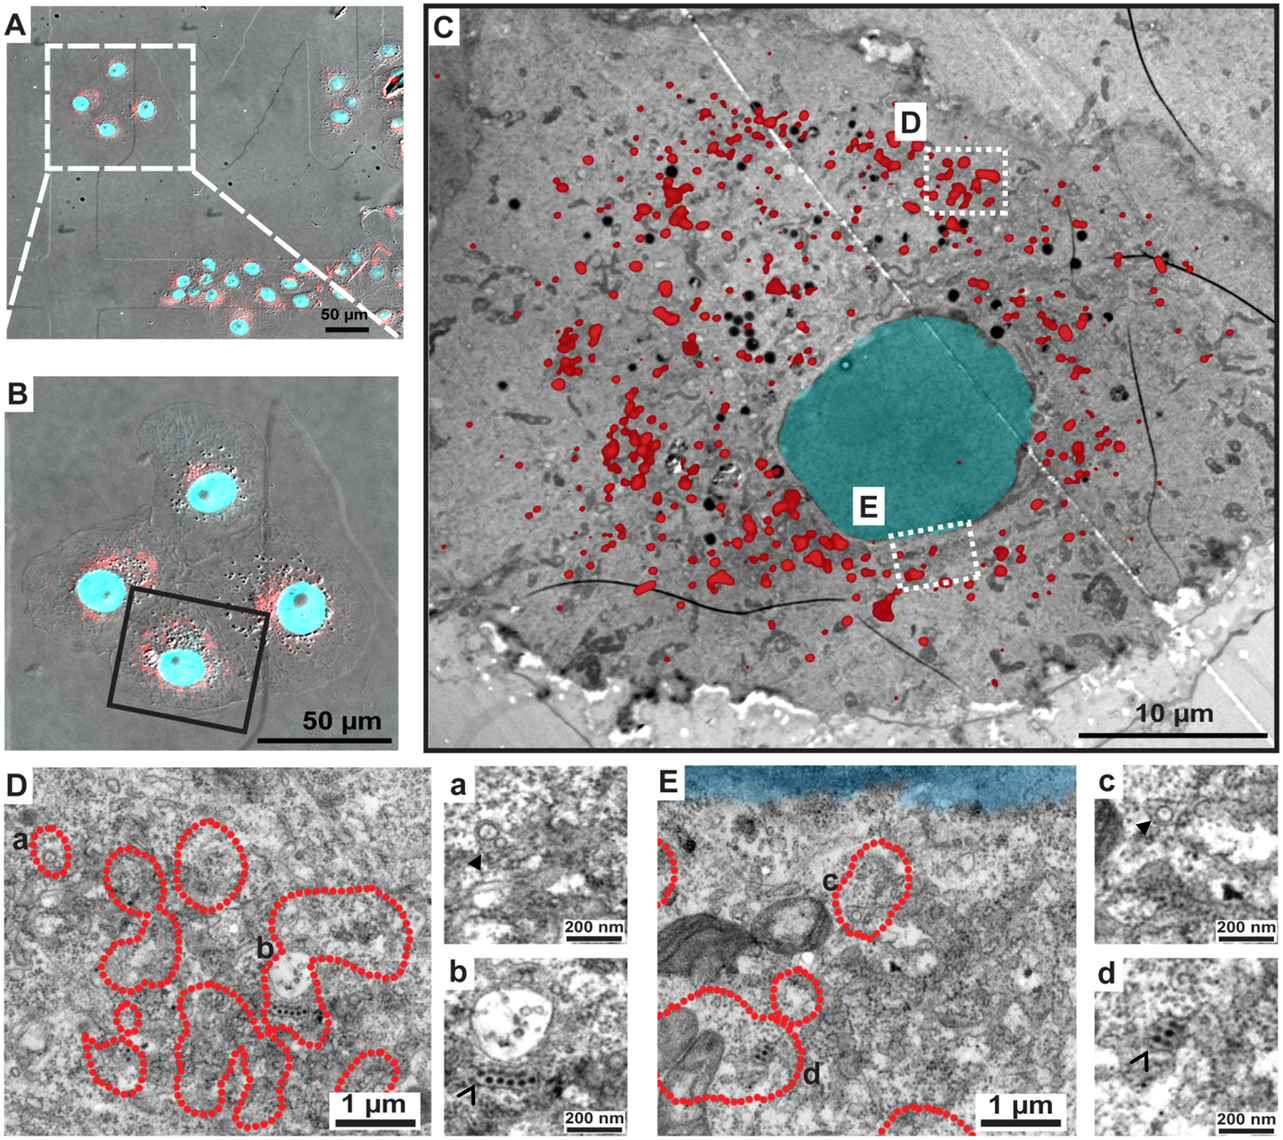 Correlative light-electron microscopy analysis identifies NS1 at sites of viral RNA replication and assembled virus particles.